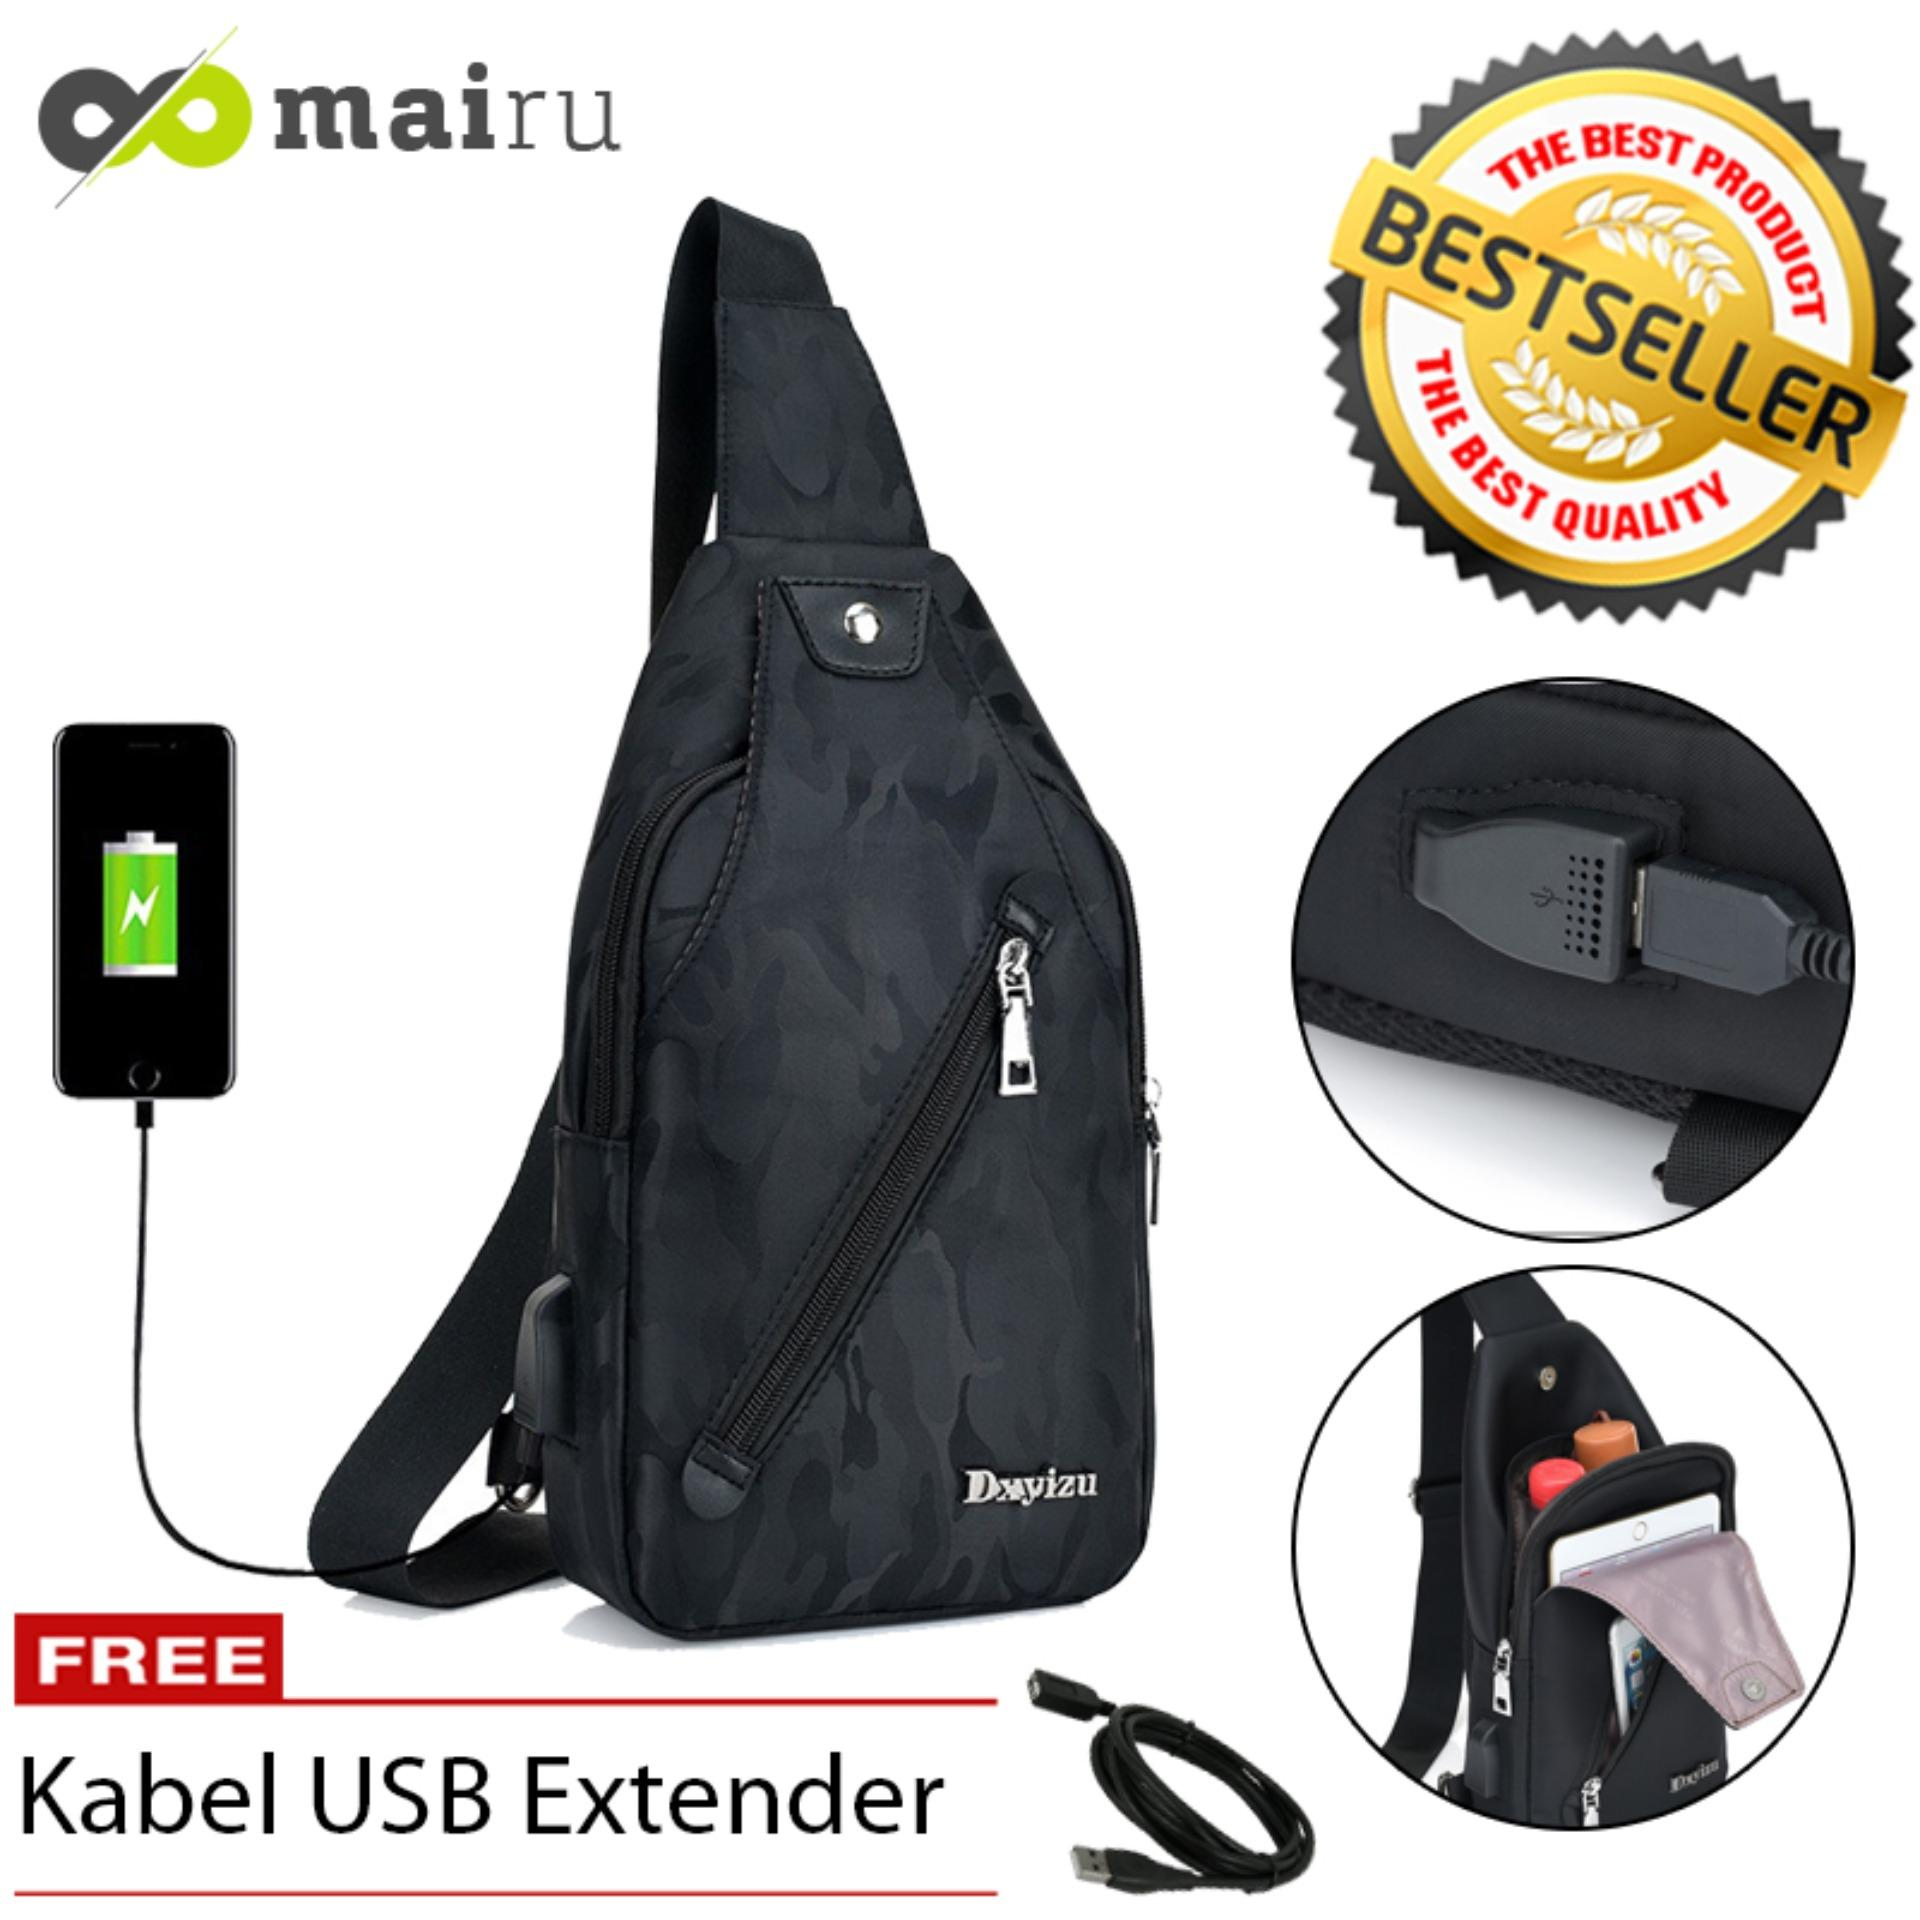 Spesifikasi Mairu Dxyizu 533 Tas Selempang Pria Sling Bag Cross Body With Usb Charger Support For Iphone Ipad Mini Xiaomi Samsung Tab Tablet 8 Anti Theft Bagus